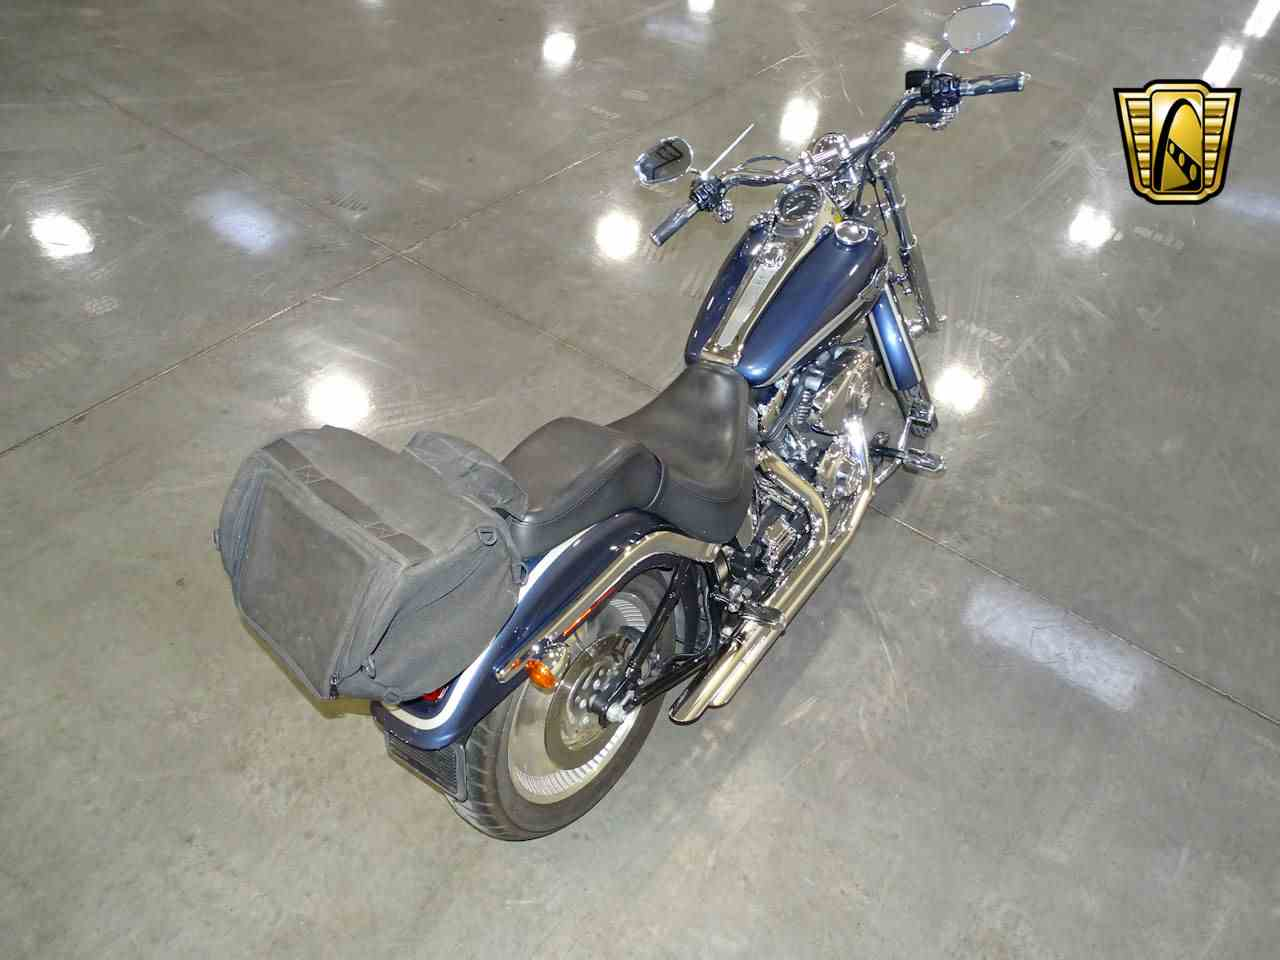 Large Picture of 2003 FXSTDI located in Arizona - $9,595.00 Offered by Gateway Classic Cars - Scottsdale - MA4S